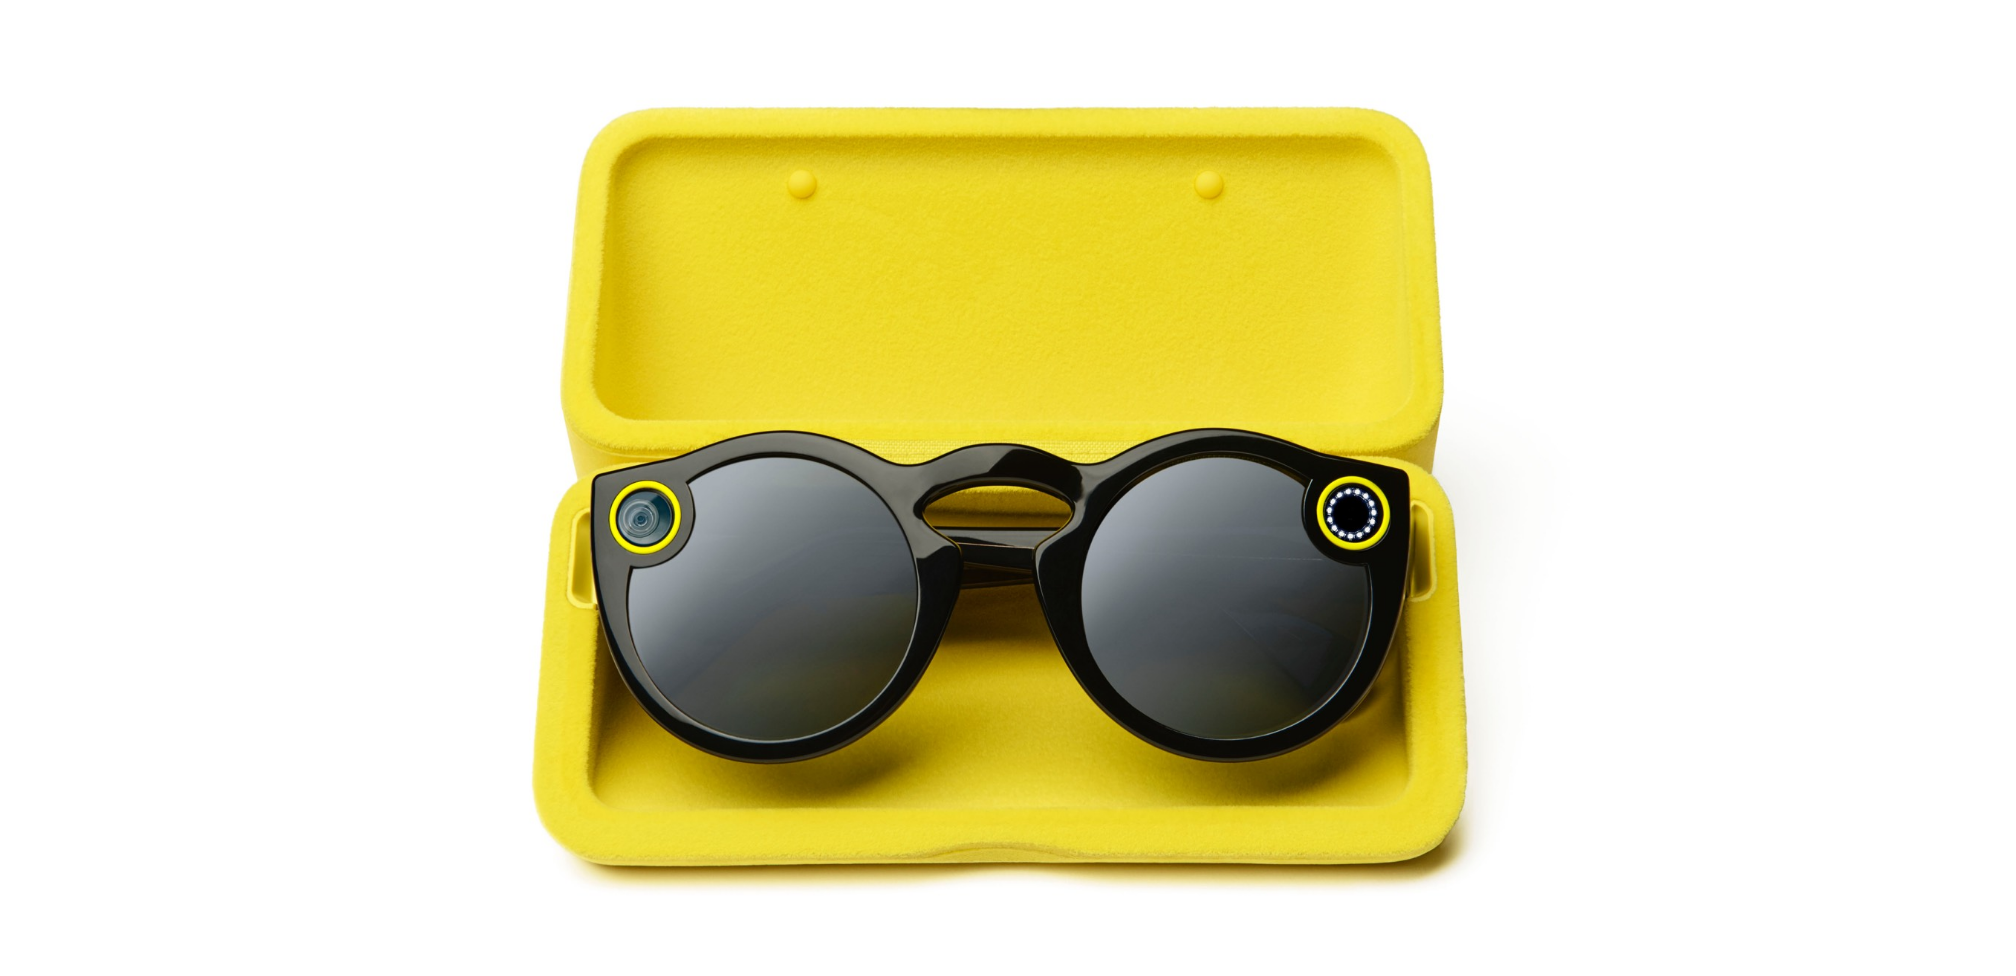 Snap Spectacles Review Fun Thats Totally Worth The Trouble The - 21 hilarious snapchats that made our day instantly better 6 cracked me up